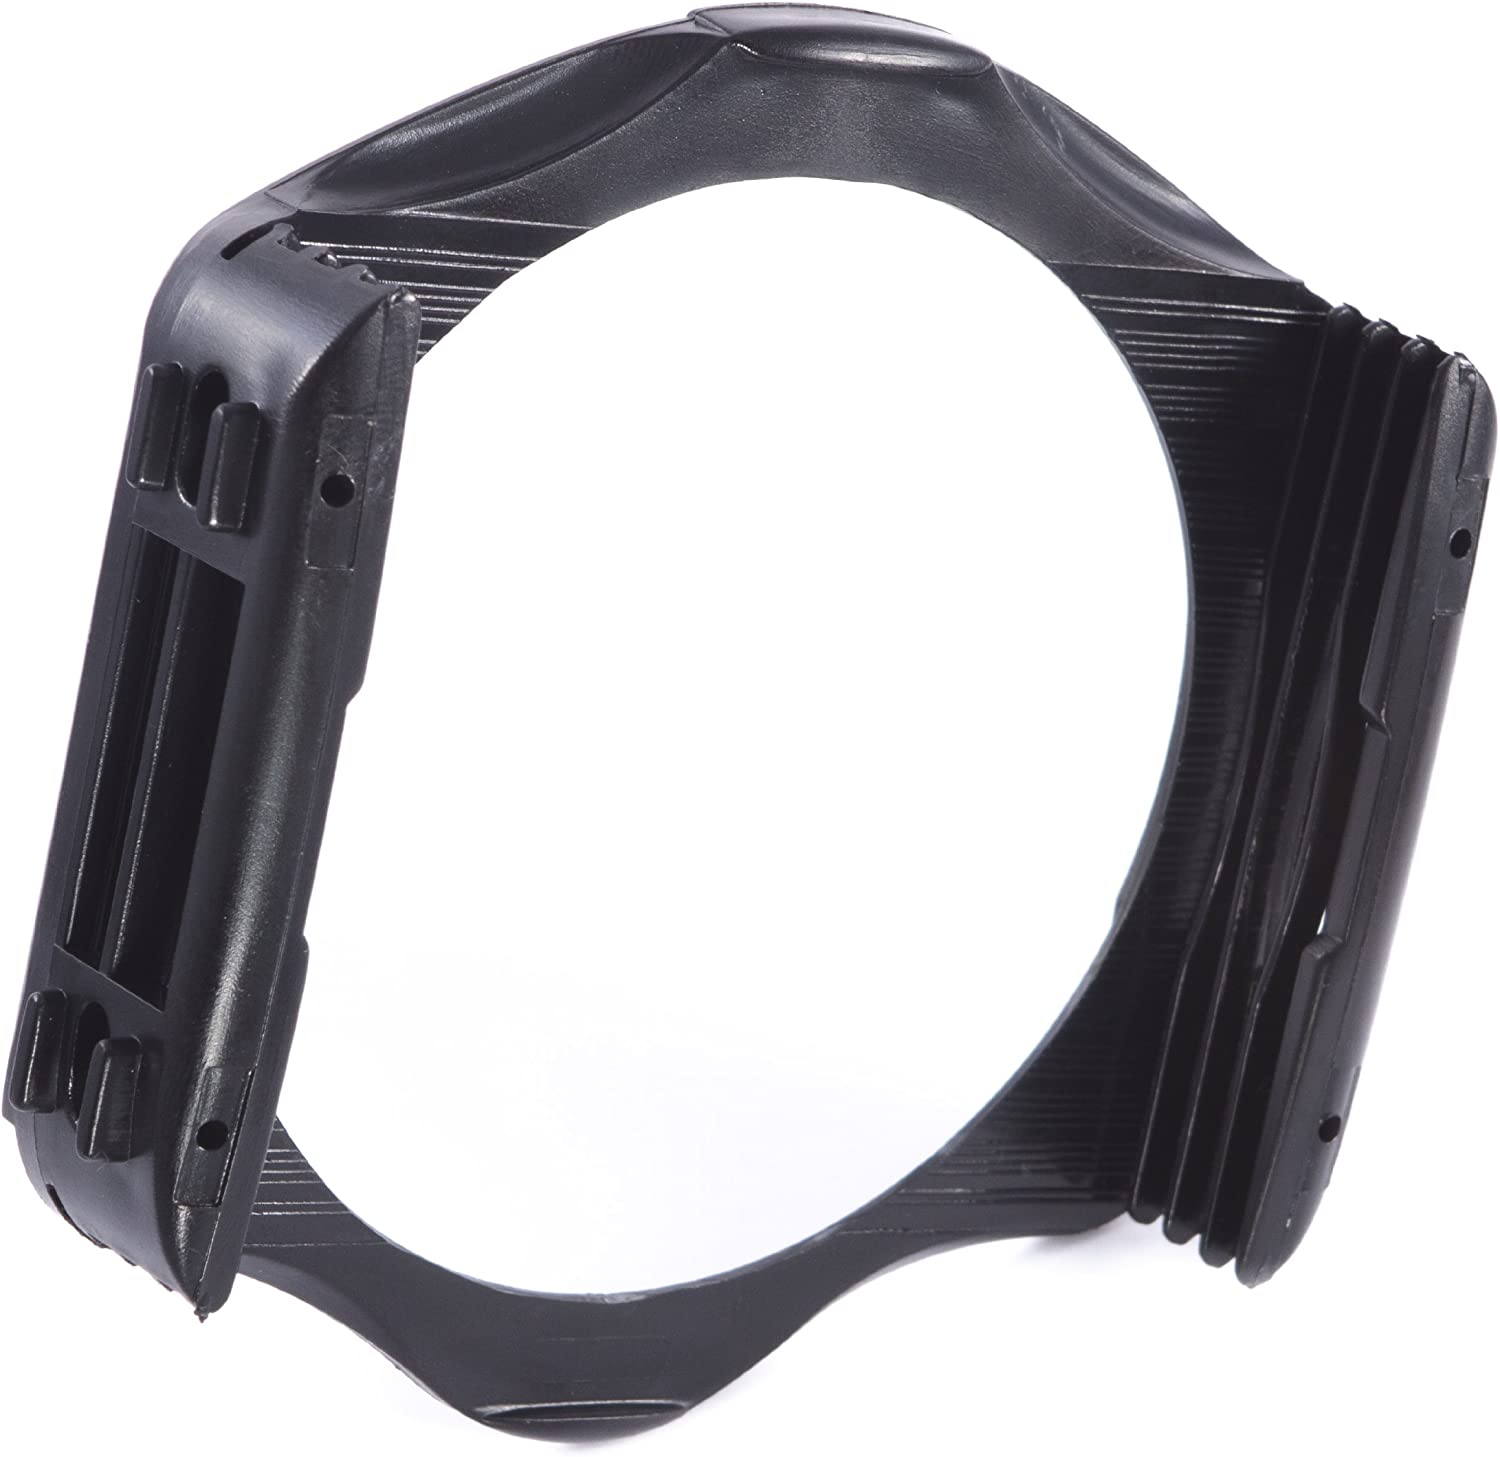 KOOD P SERIES FILTER HOLDER WITH 82MM ADAPTER RING ALSO FITS COKIN P